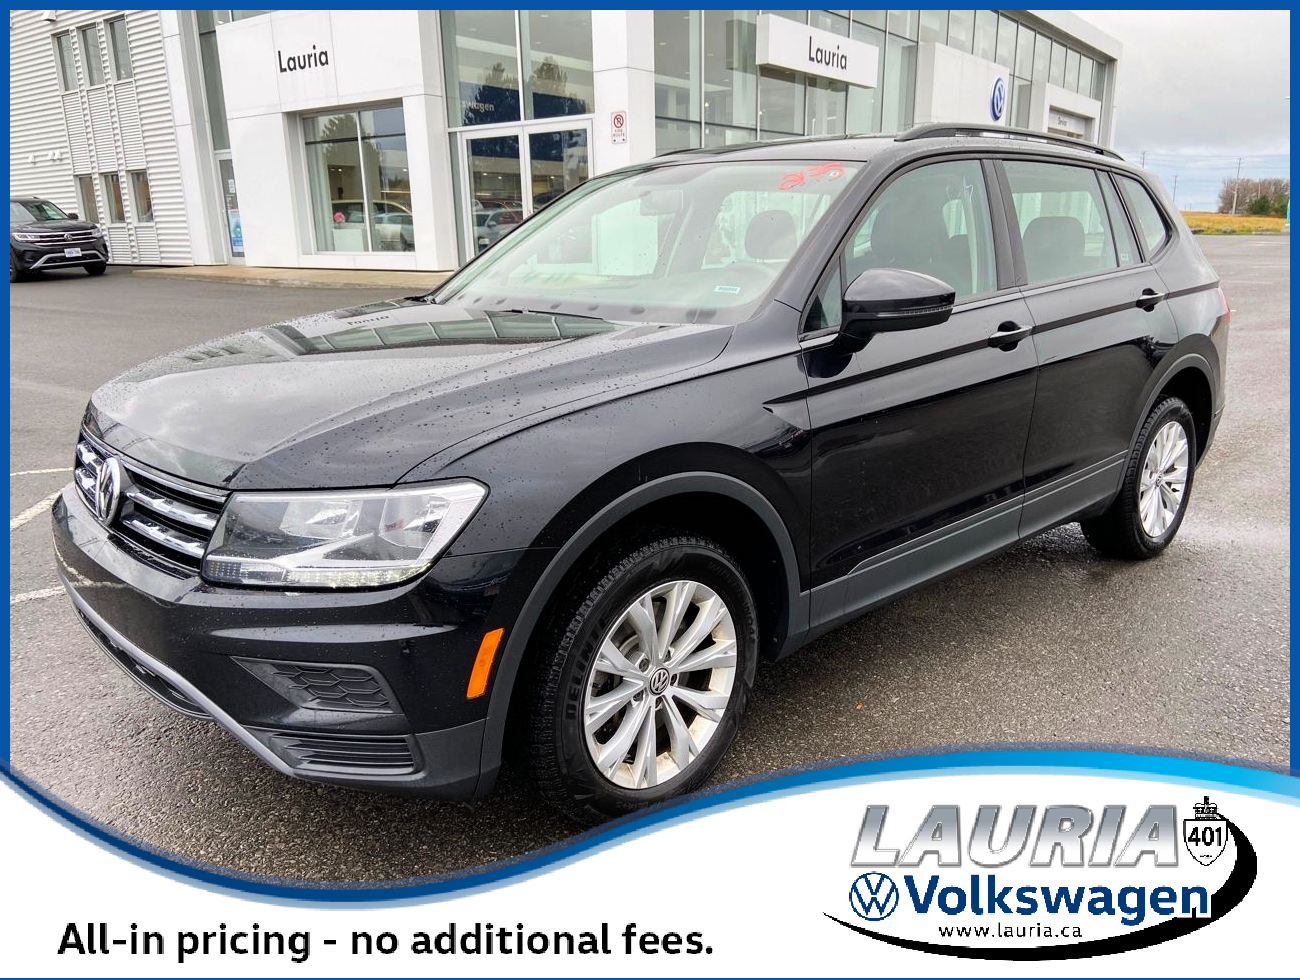 Certified Pre-Owned 2019 Volkswagen Tiguan 2.0T Trendline 4Motion AWD